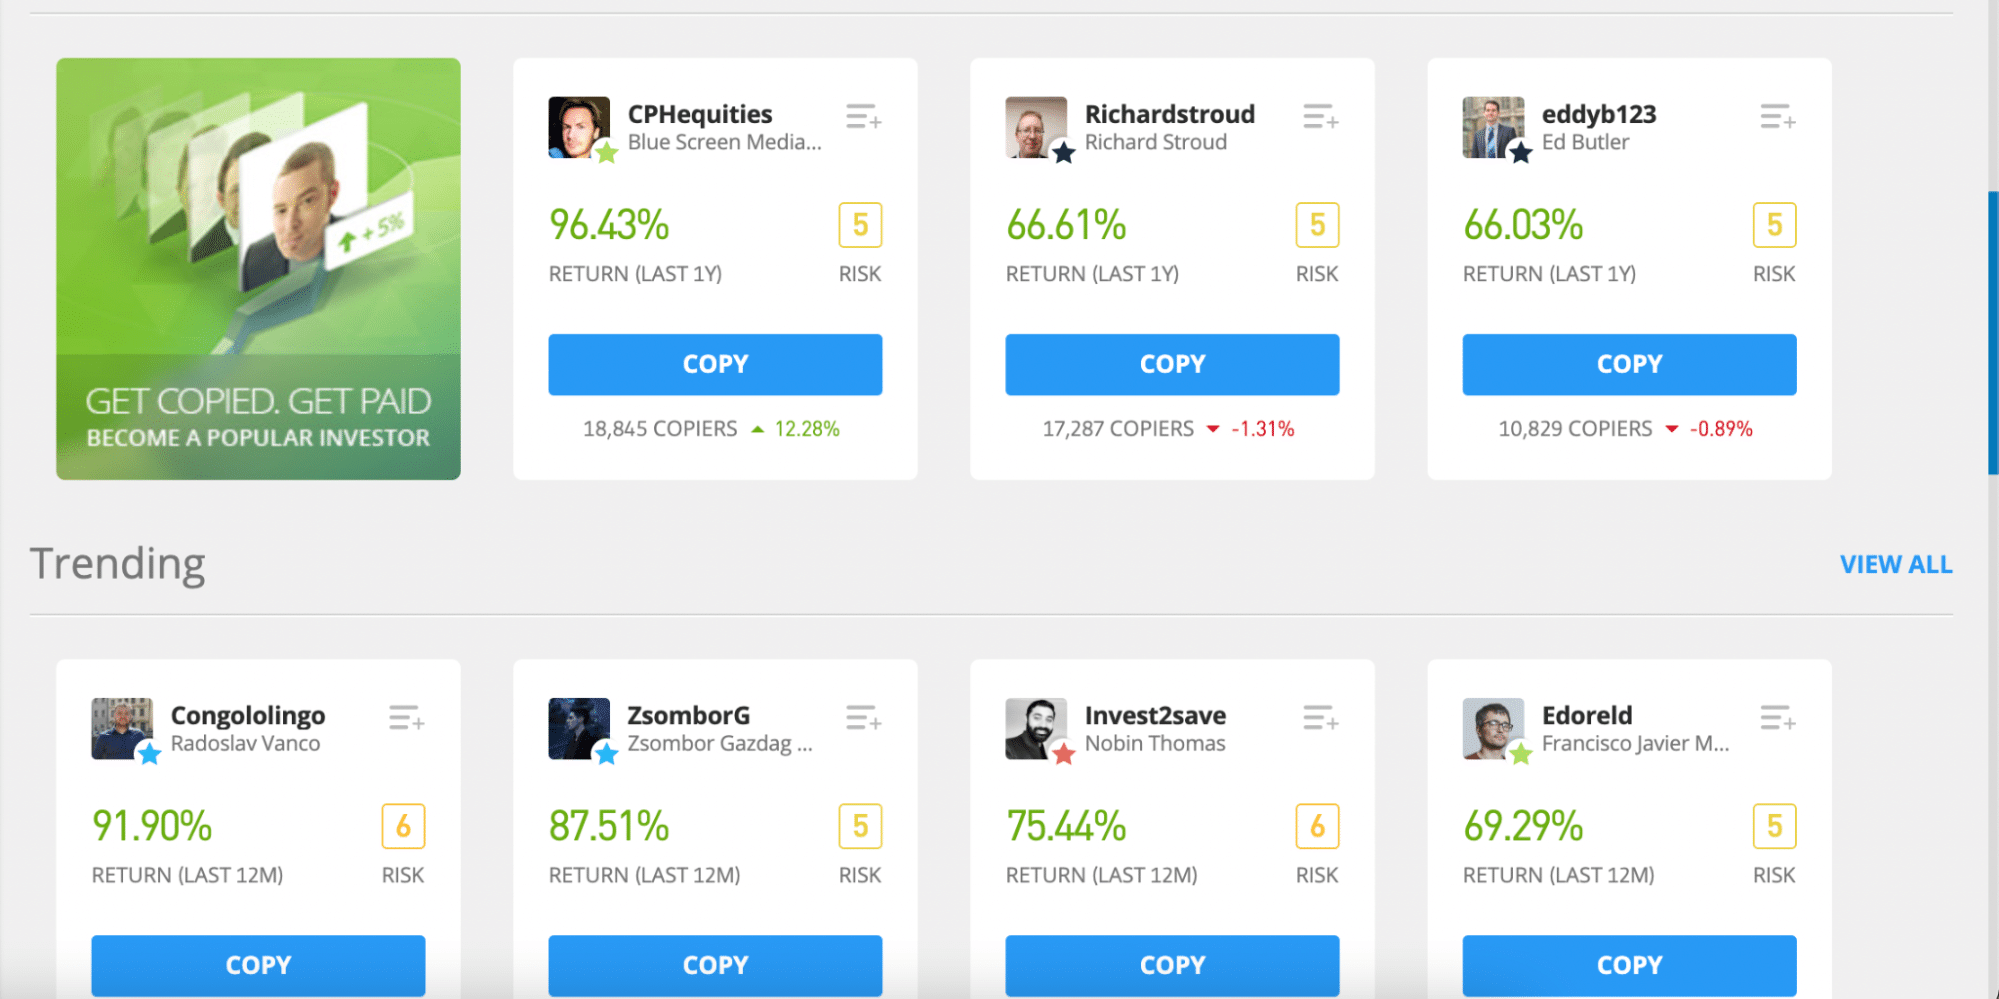 The list of traders from the eToro platform